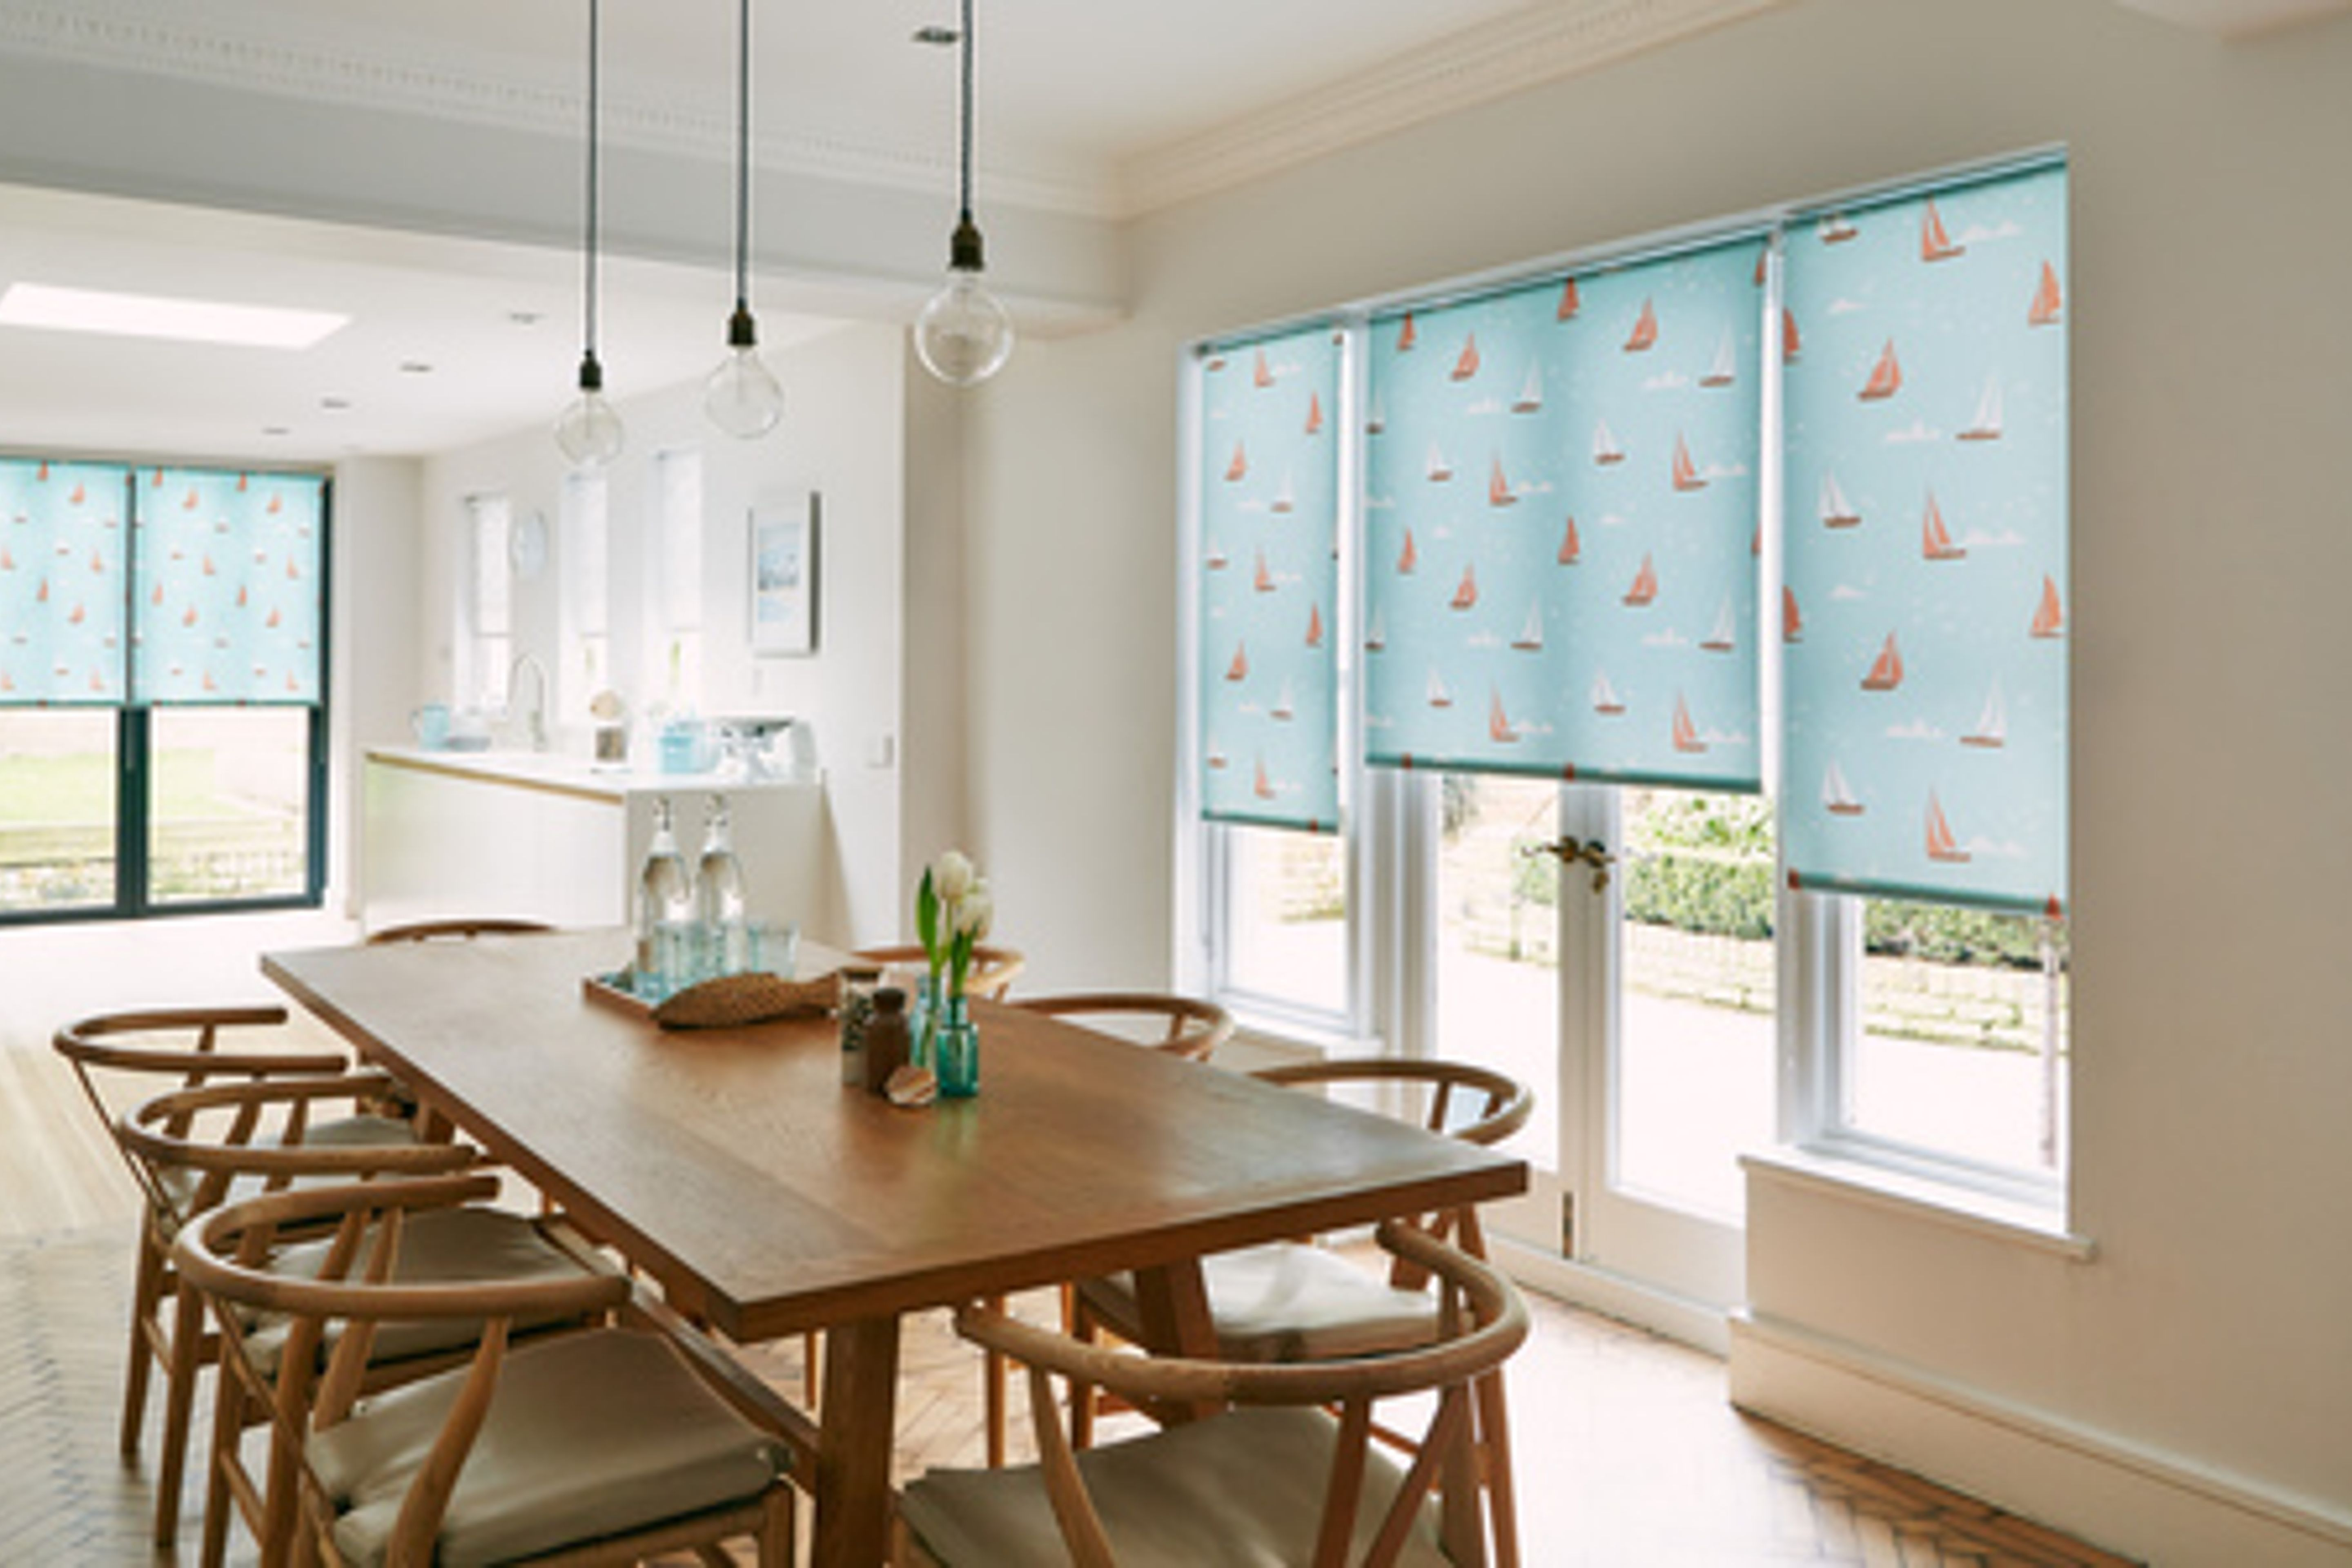 Boats Teal Roller blind -